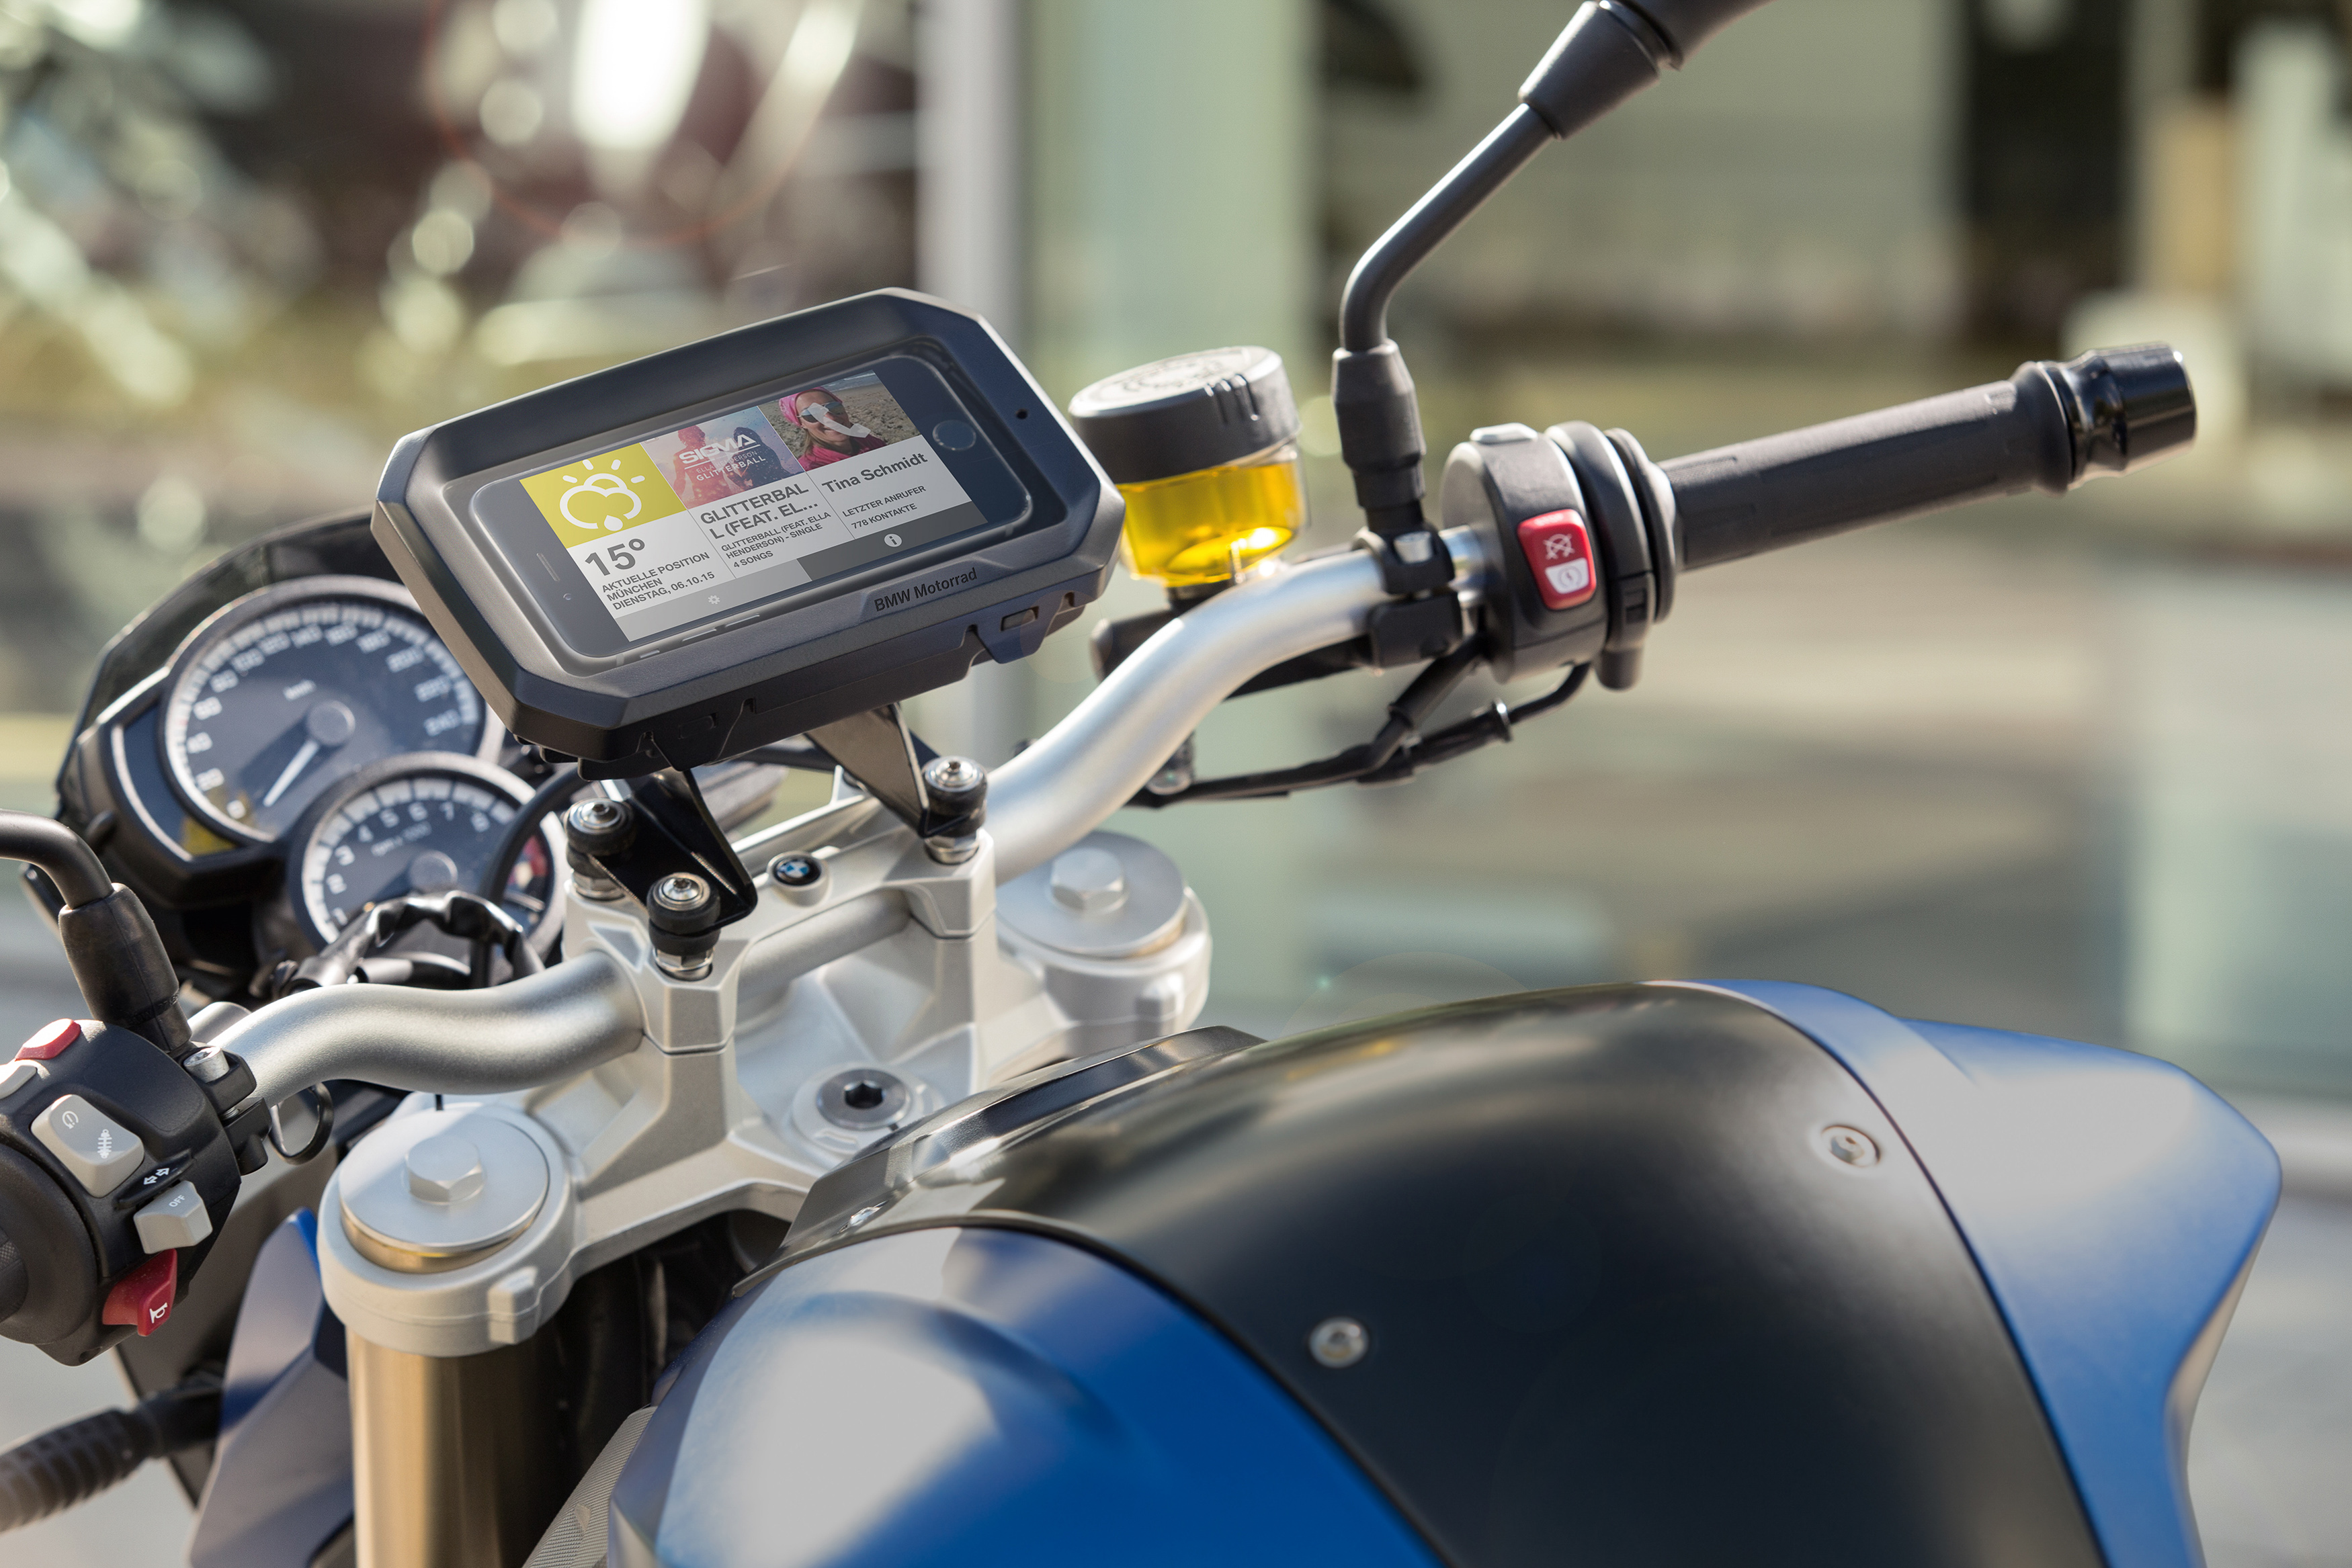 Smartphone Cradle available for BMW motorcycles and scooters.